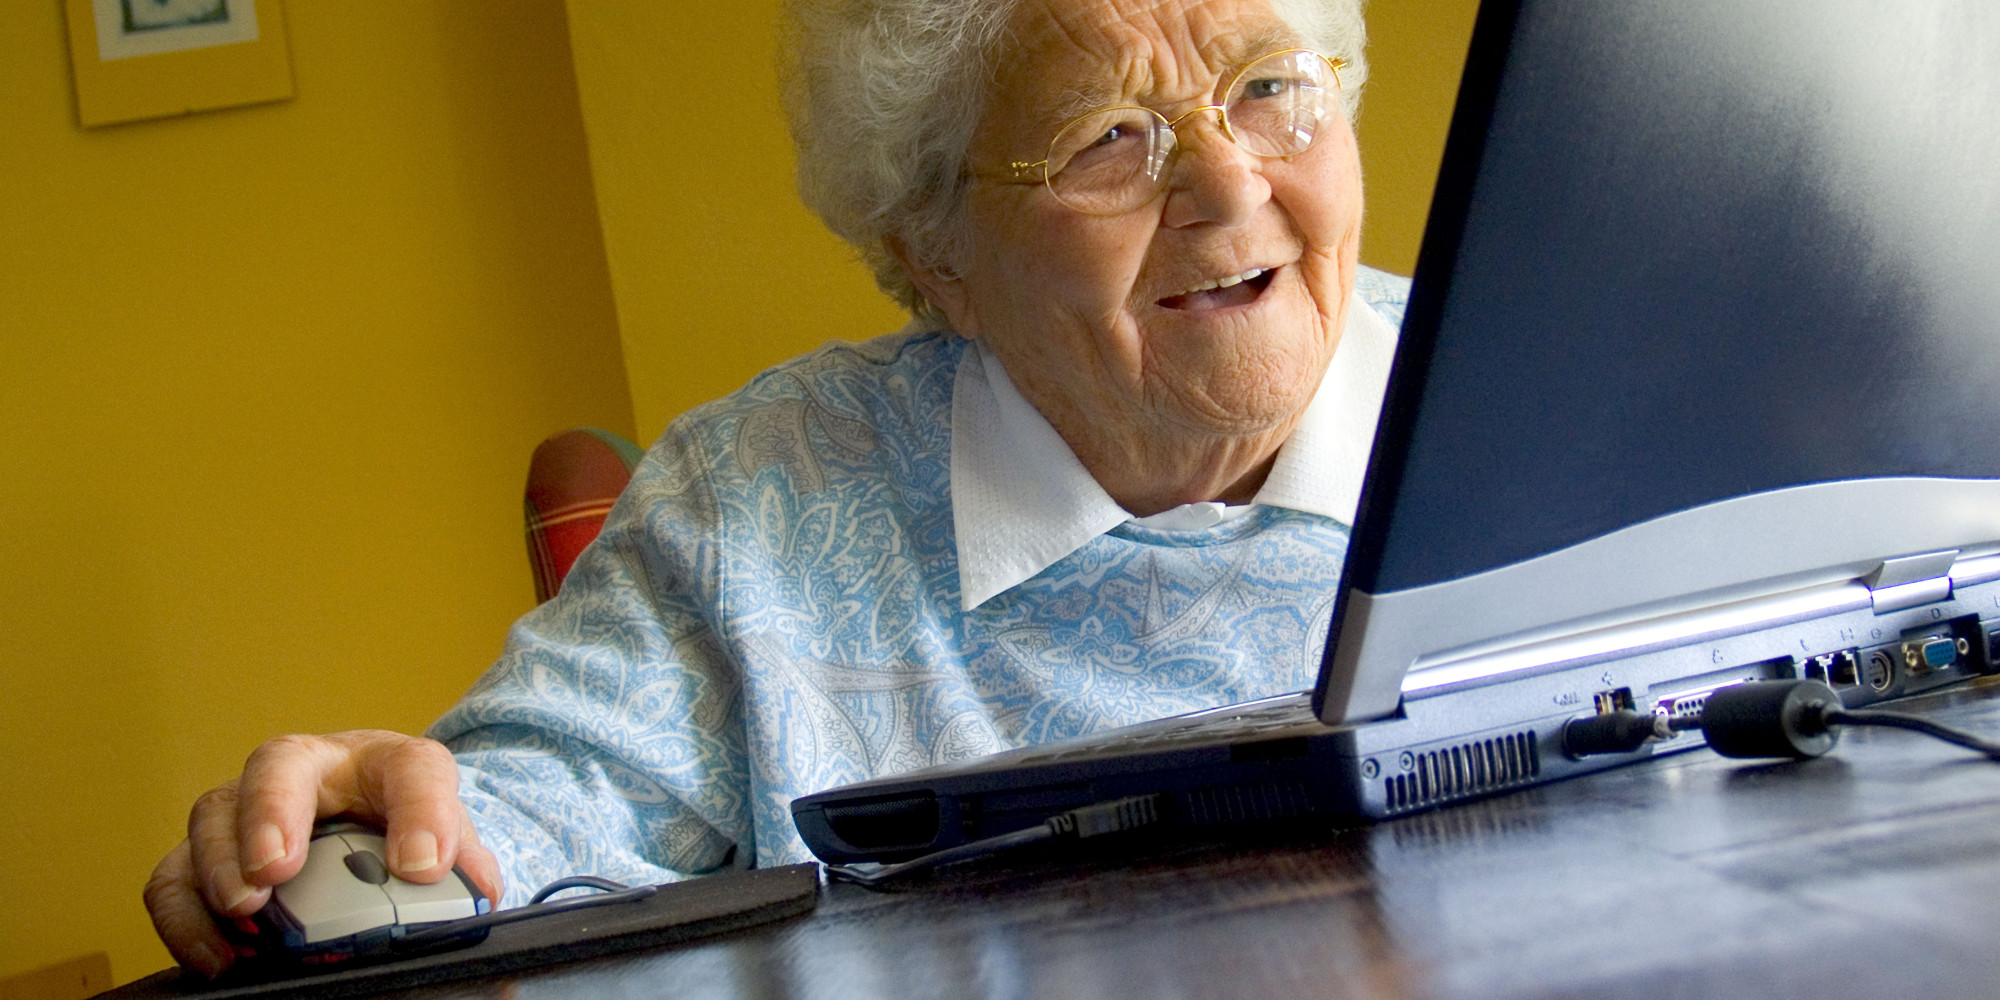 Old Lady Computer Old-lady.jpg